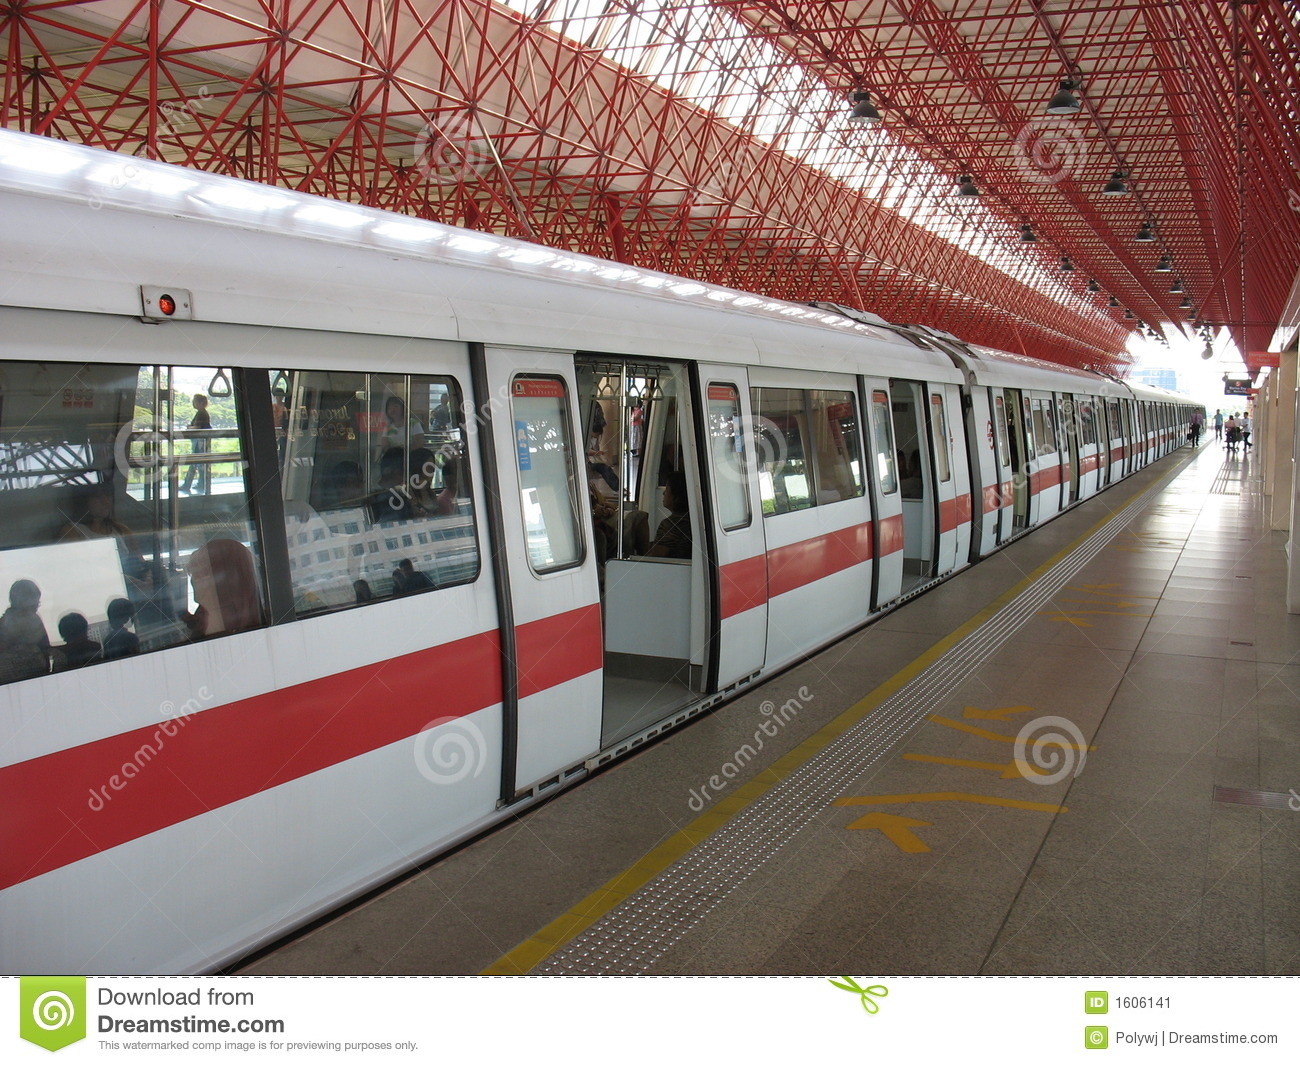 An MRT train stopping at the Jurong East station in Singapore.